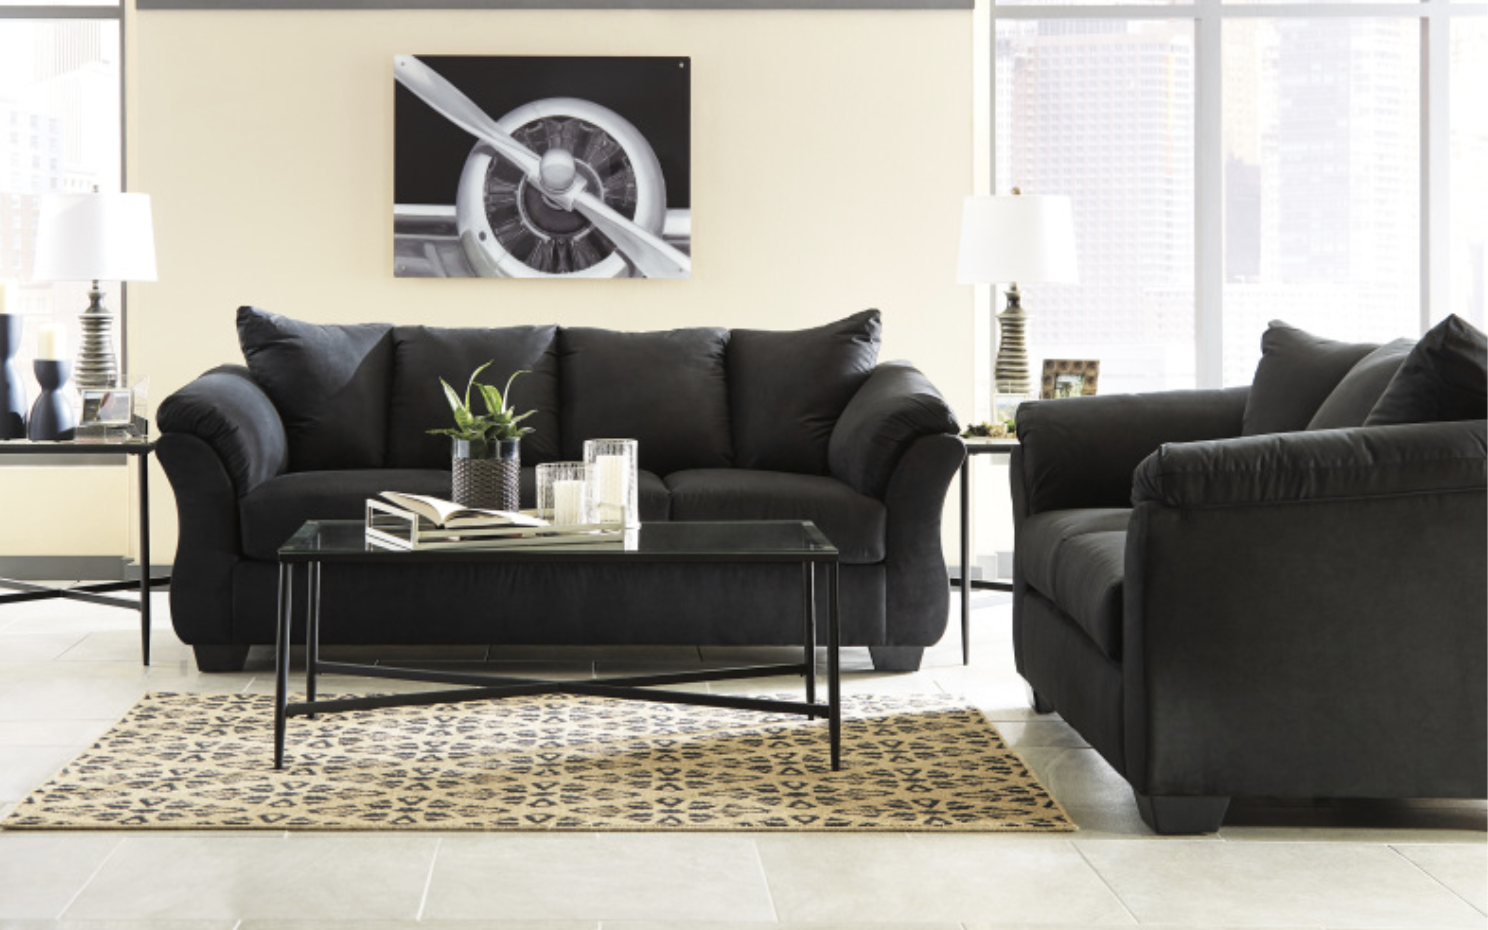 750 Sofa and Loveseat (Black)